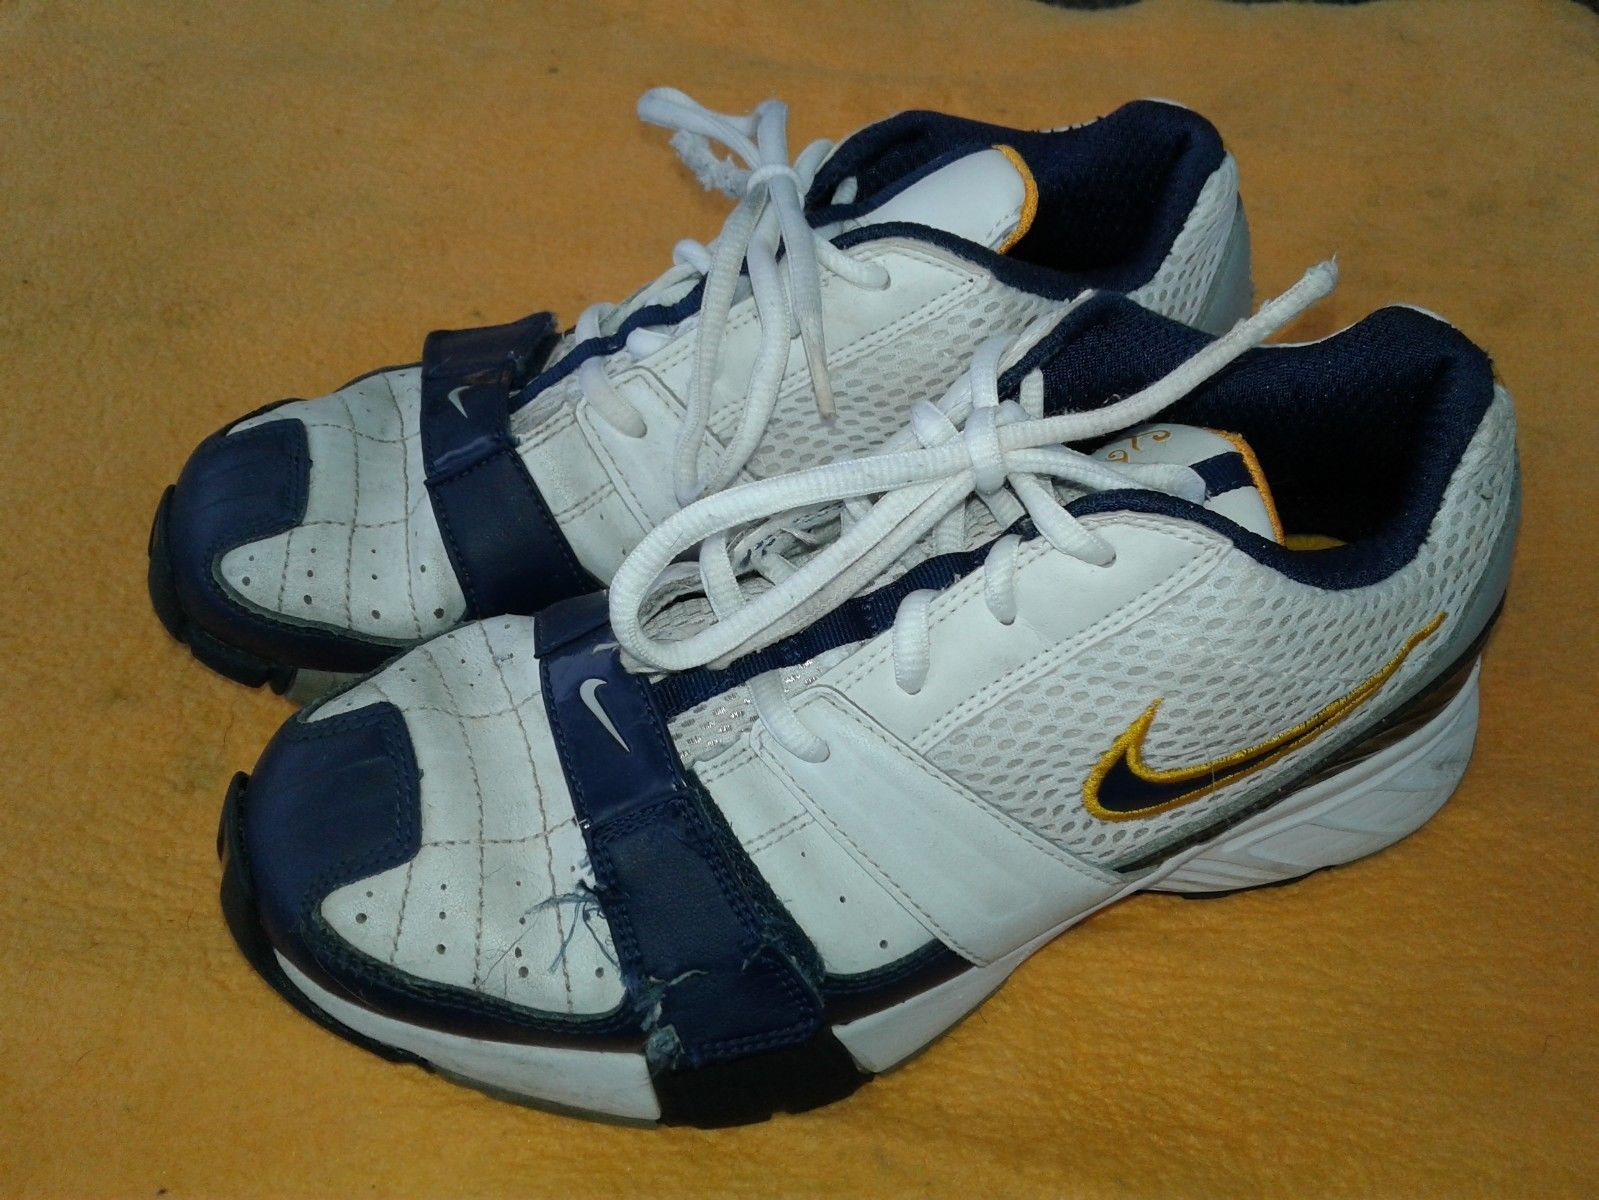 9484bce5a2 Nike Kids Scream LT (GS/PS) shoes! 7Y and 50 similar items